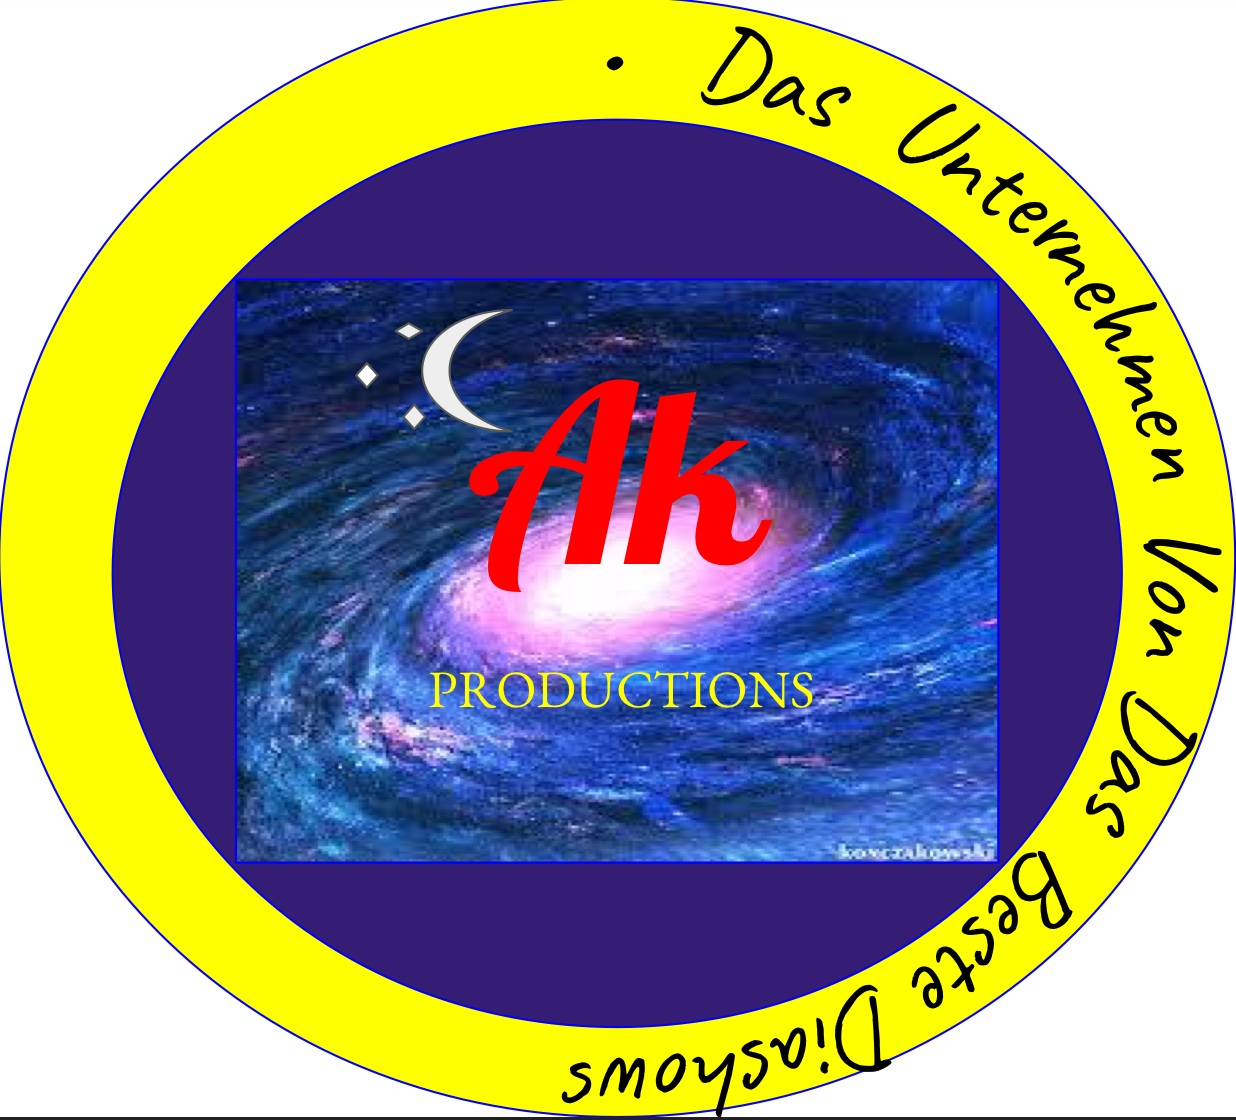 AK productions primary image